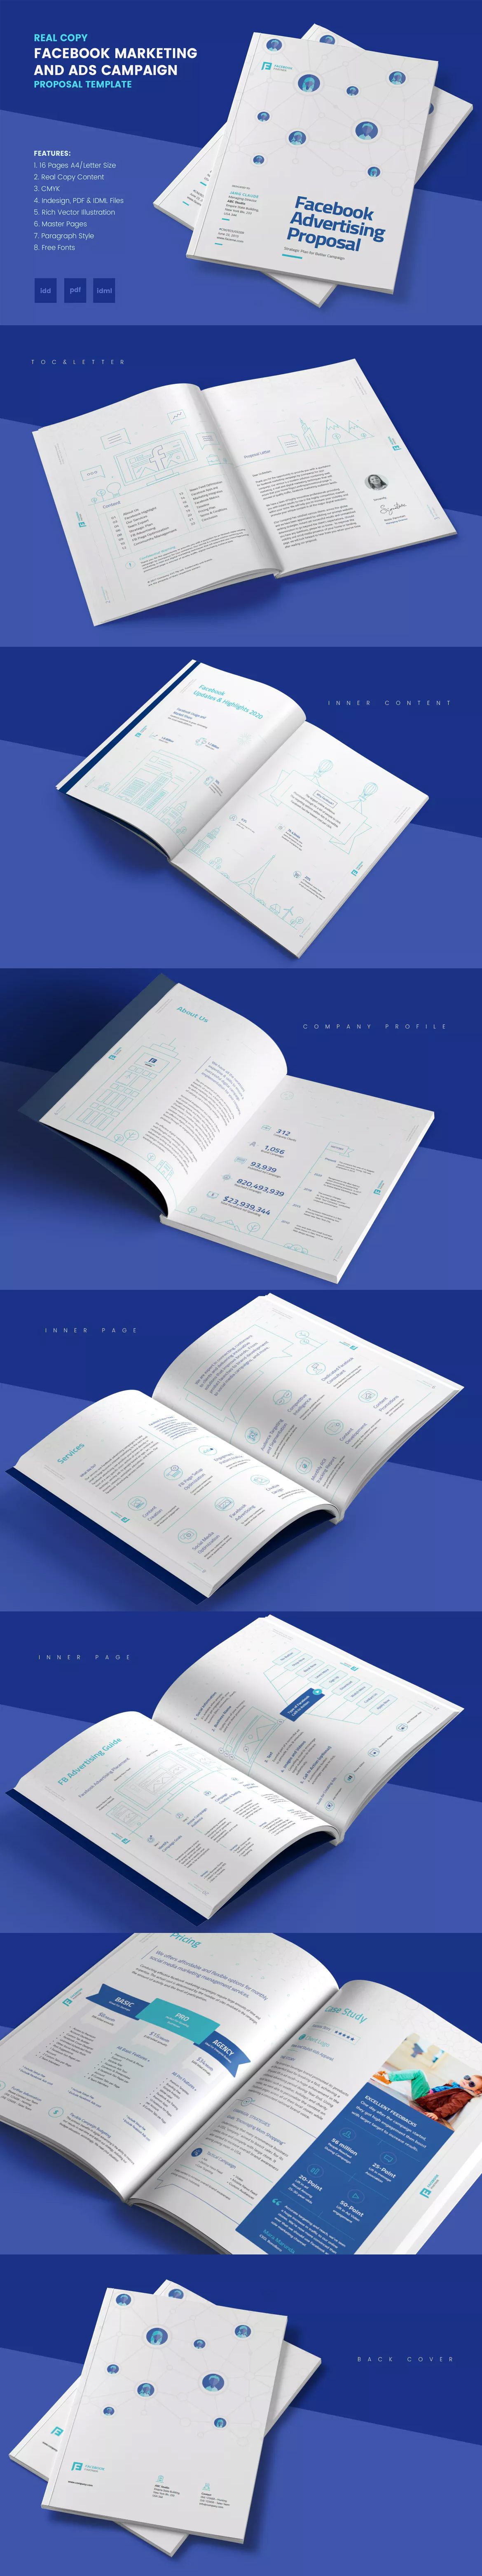 Facebook Marketing  Ads Proposal Template Indesign Indd  A And